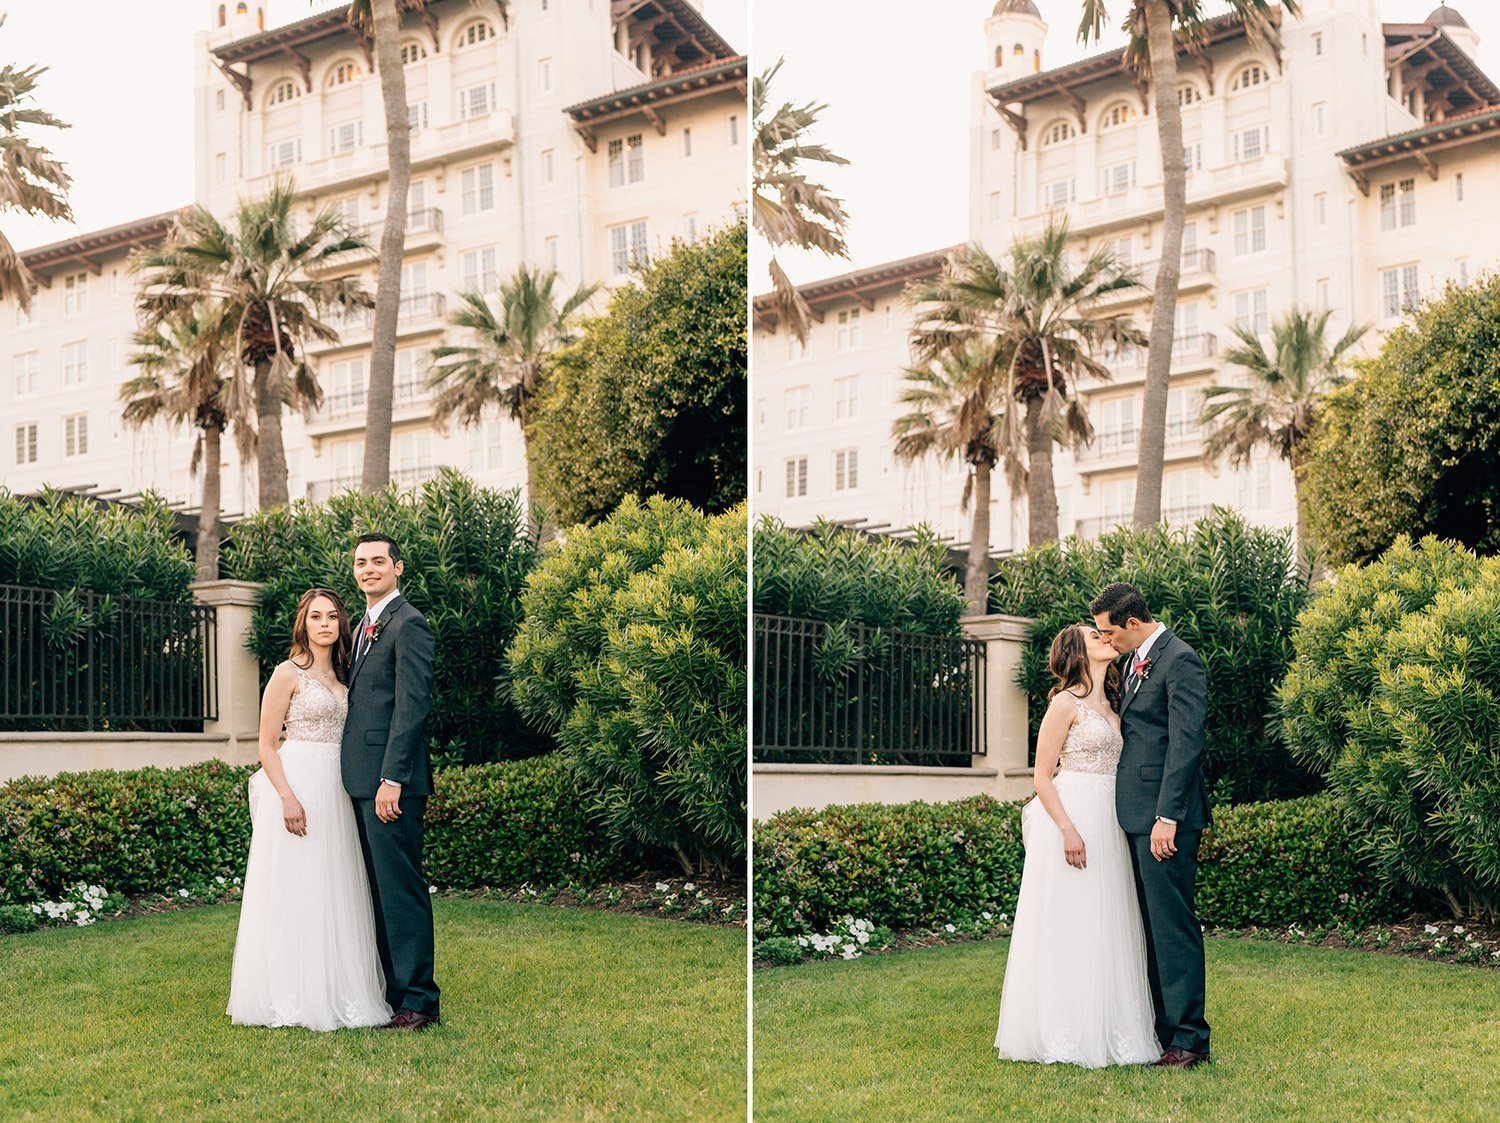 bride and groom portraits after their sweet wedding at hotel galvez